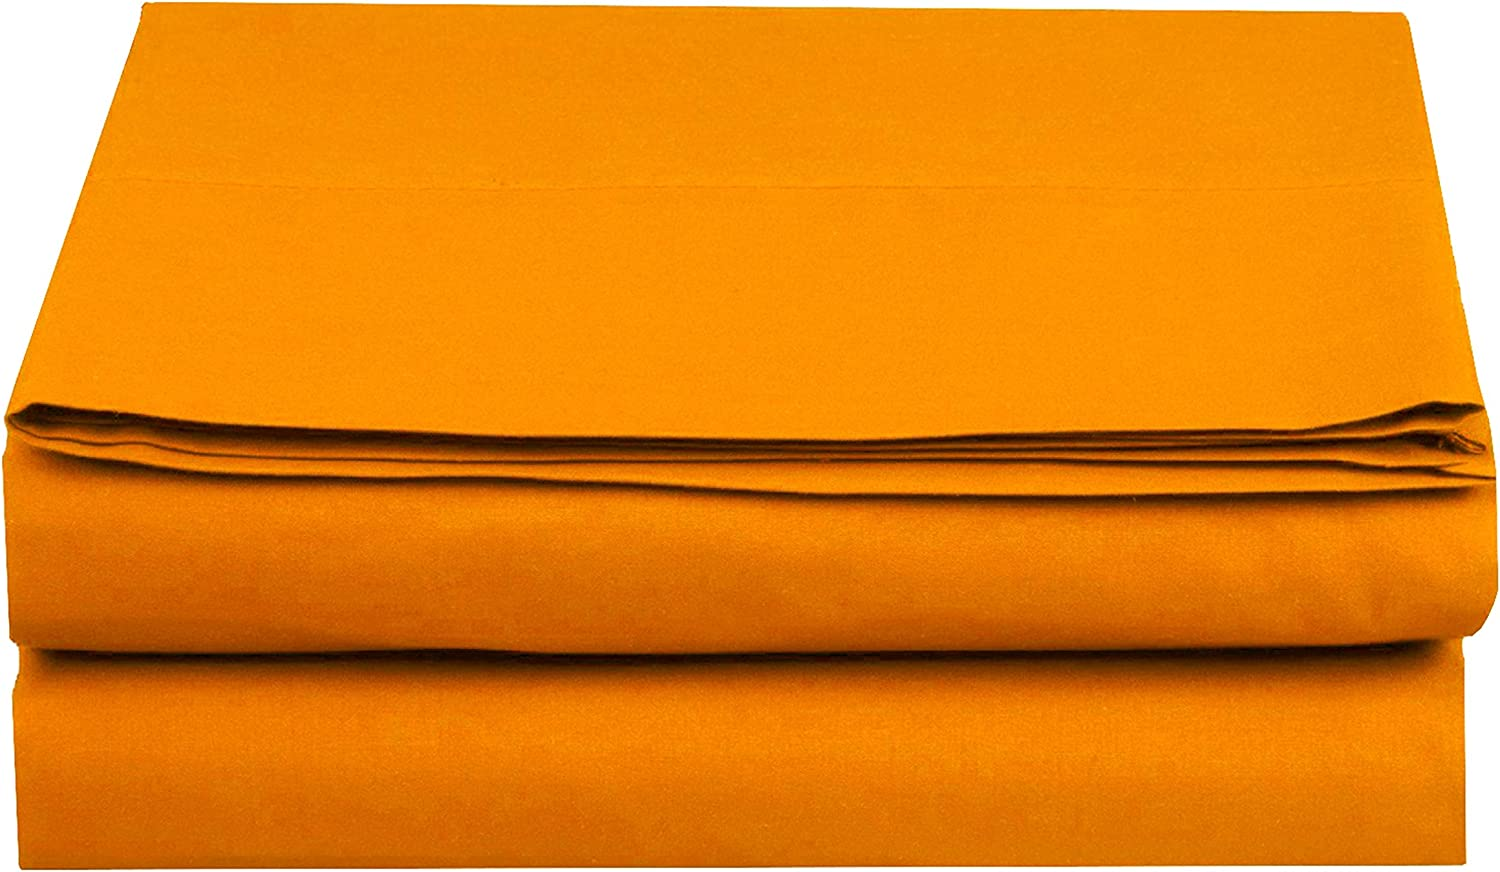 Stain-Resistant 100/% Hypoallergenic King Wrinkle-Free Elegant Comfort Premium Hotel 1-Piece Luxury and Softest 1500 Thread Count Egyptian Quality Bedding Flat Sheet Orange